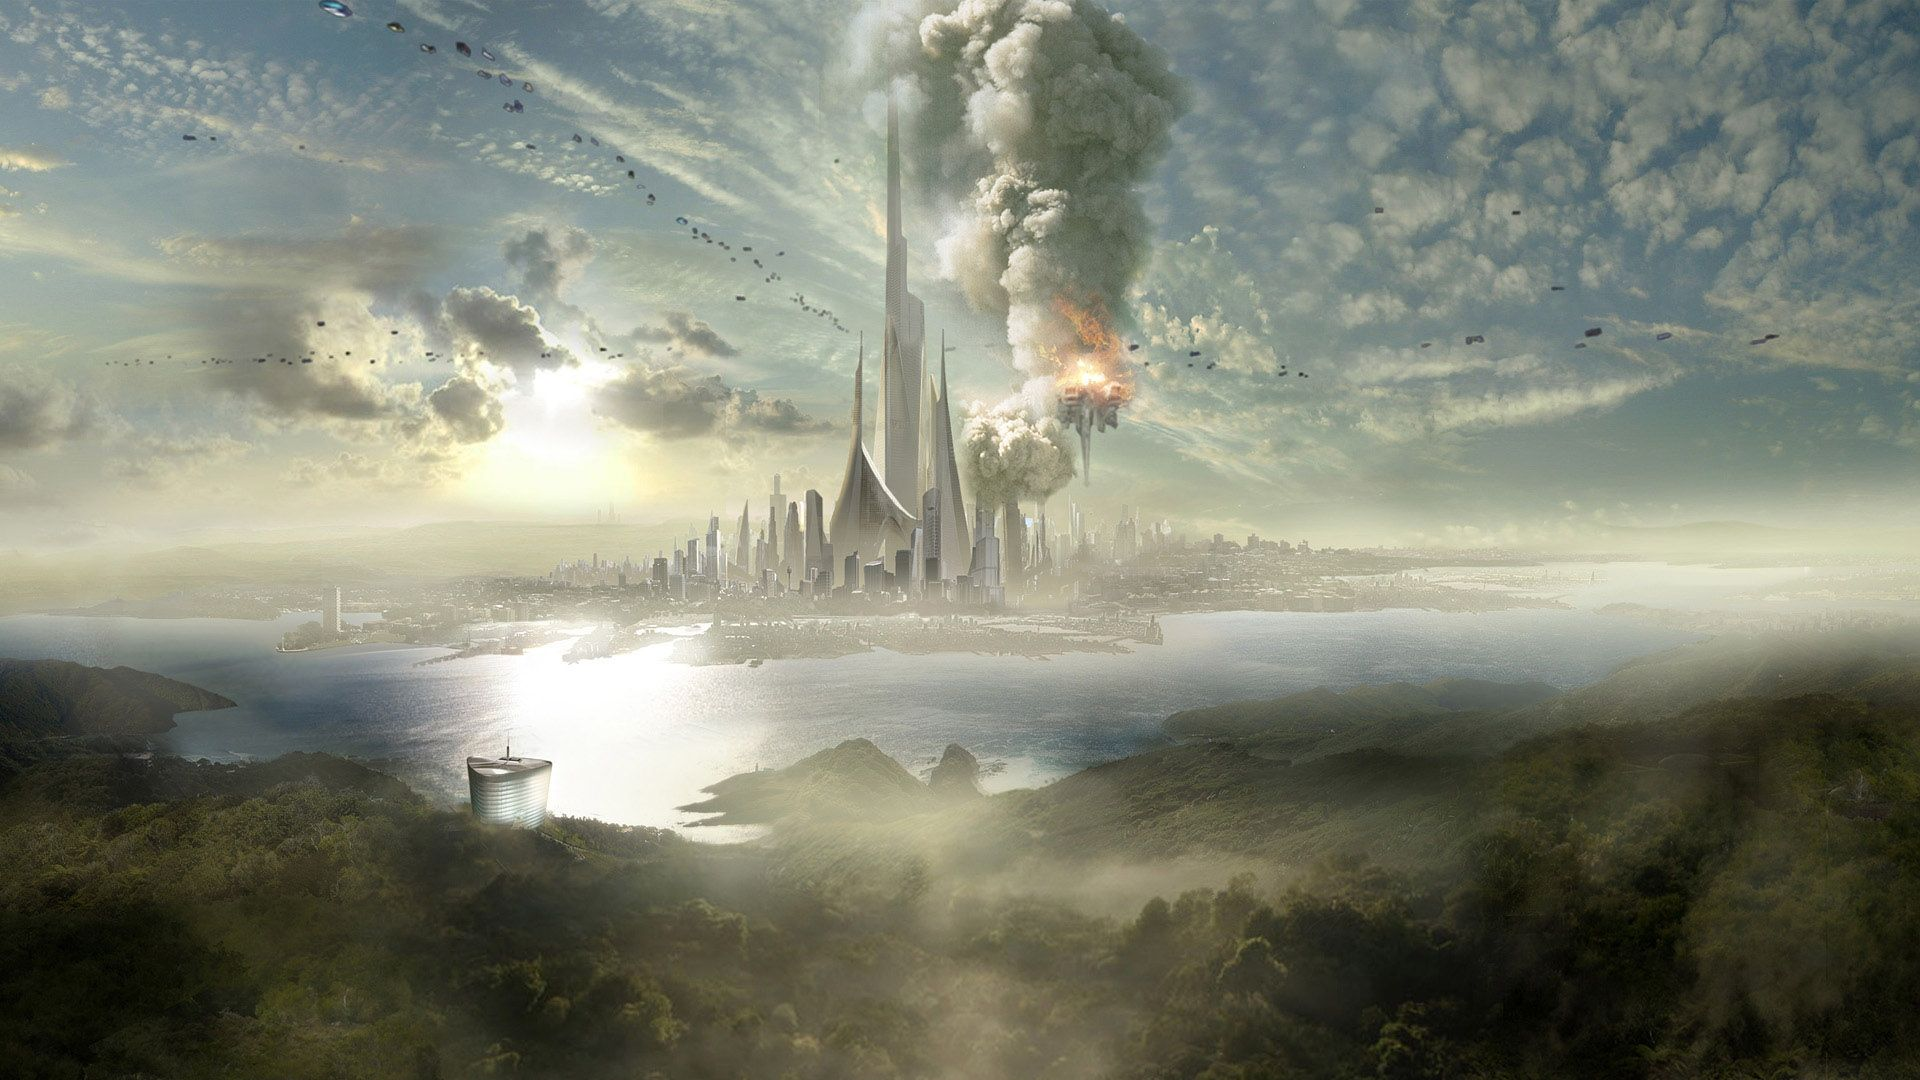 Fantasy Wallpapers Hd Wallpapers Backgrounds Of Your Choice Sci Fi Wallpaper Fantasy Landscape Fantasy Background